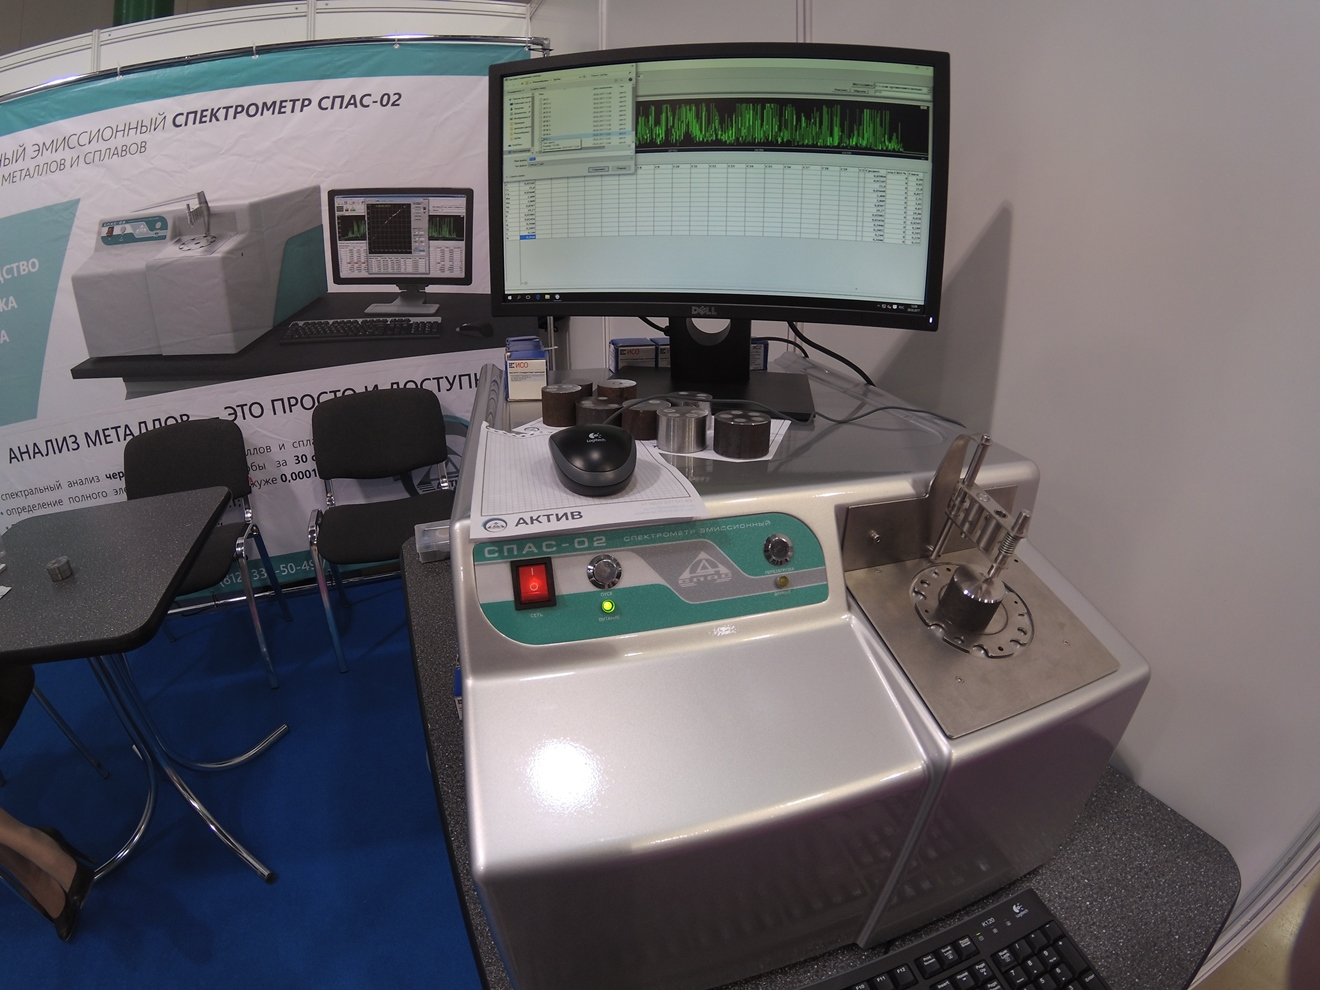 Spectrometer SPAS-02. International exhibition Expo Control 2017 in Moscow.